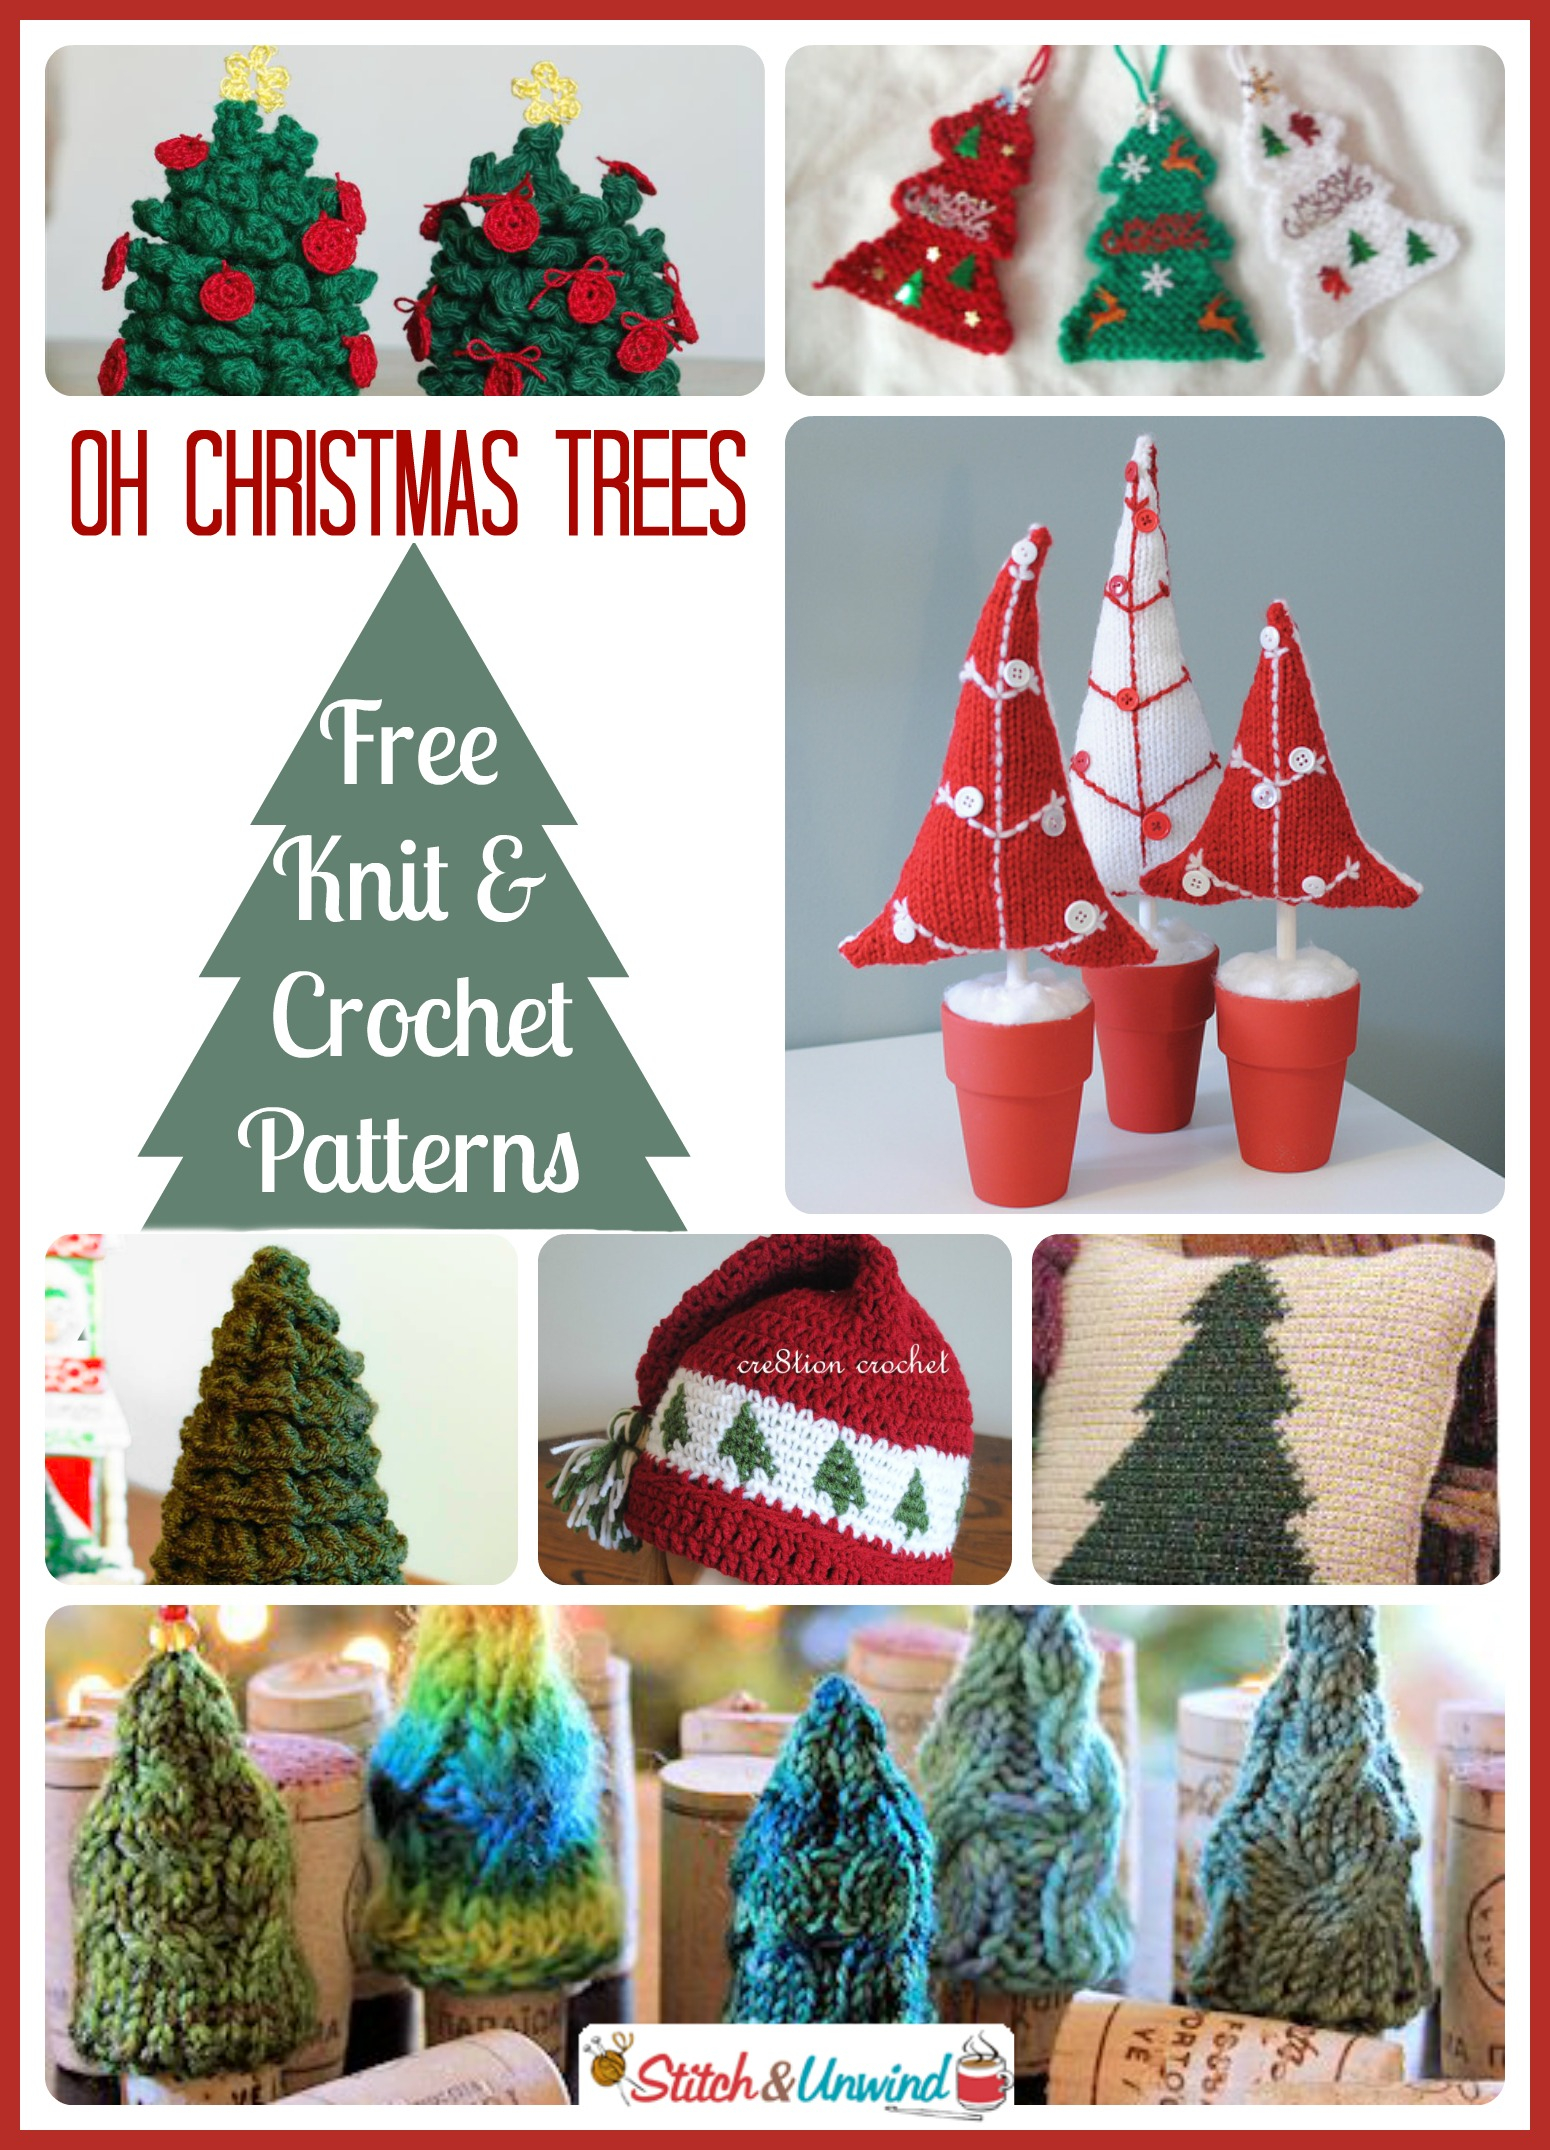 Free Knitted Christmas Tree Decorations Patterns Oh Christmas Trees Lovely Knit Crochet Patterns Stitch And Unwind